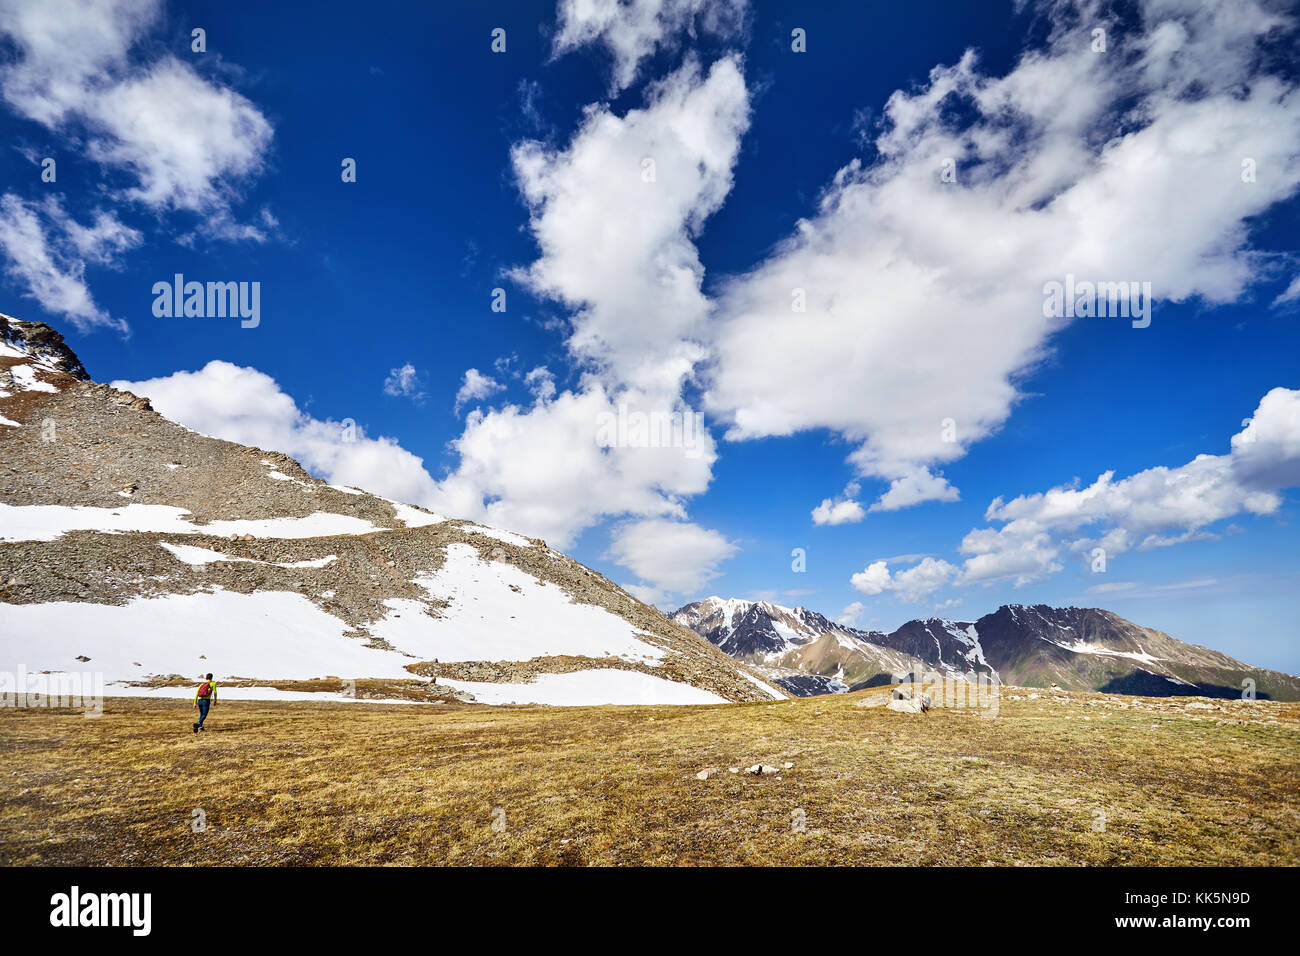 Hiker in yellow shirt with backpack walking in the snowy mountains at cloudy sky background - Stock Image